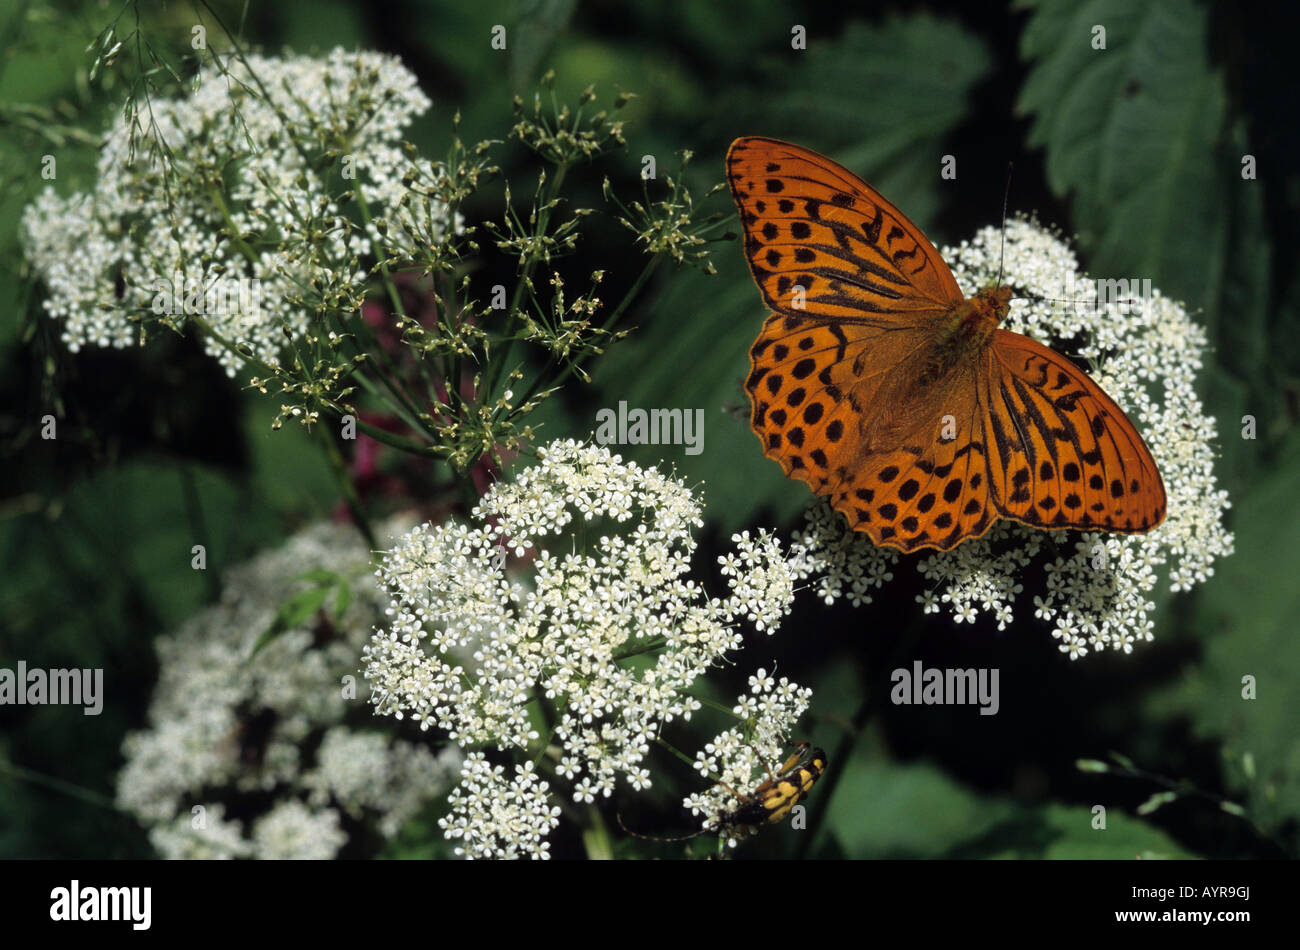 Silver-washed Fritillary (Argynnis paphia) perched on a flower - Stock Image